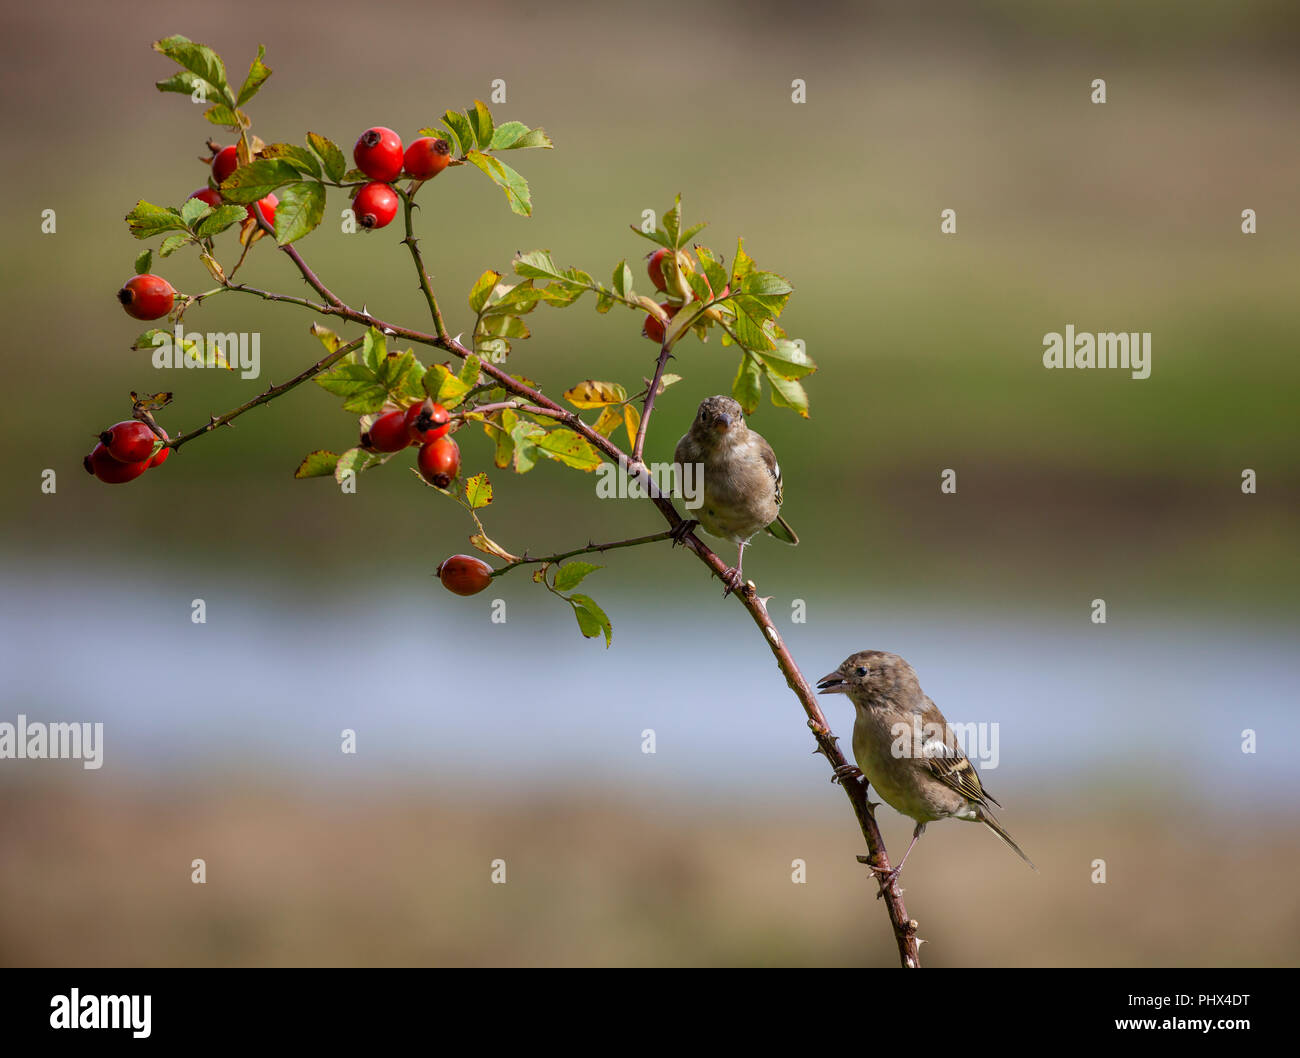 Two female or juvenile Common Chaffinches, Fringilla coelebs, perched on a branch with leaves and rose hips against a defocussed natural background. Stock Photo